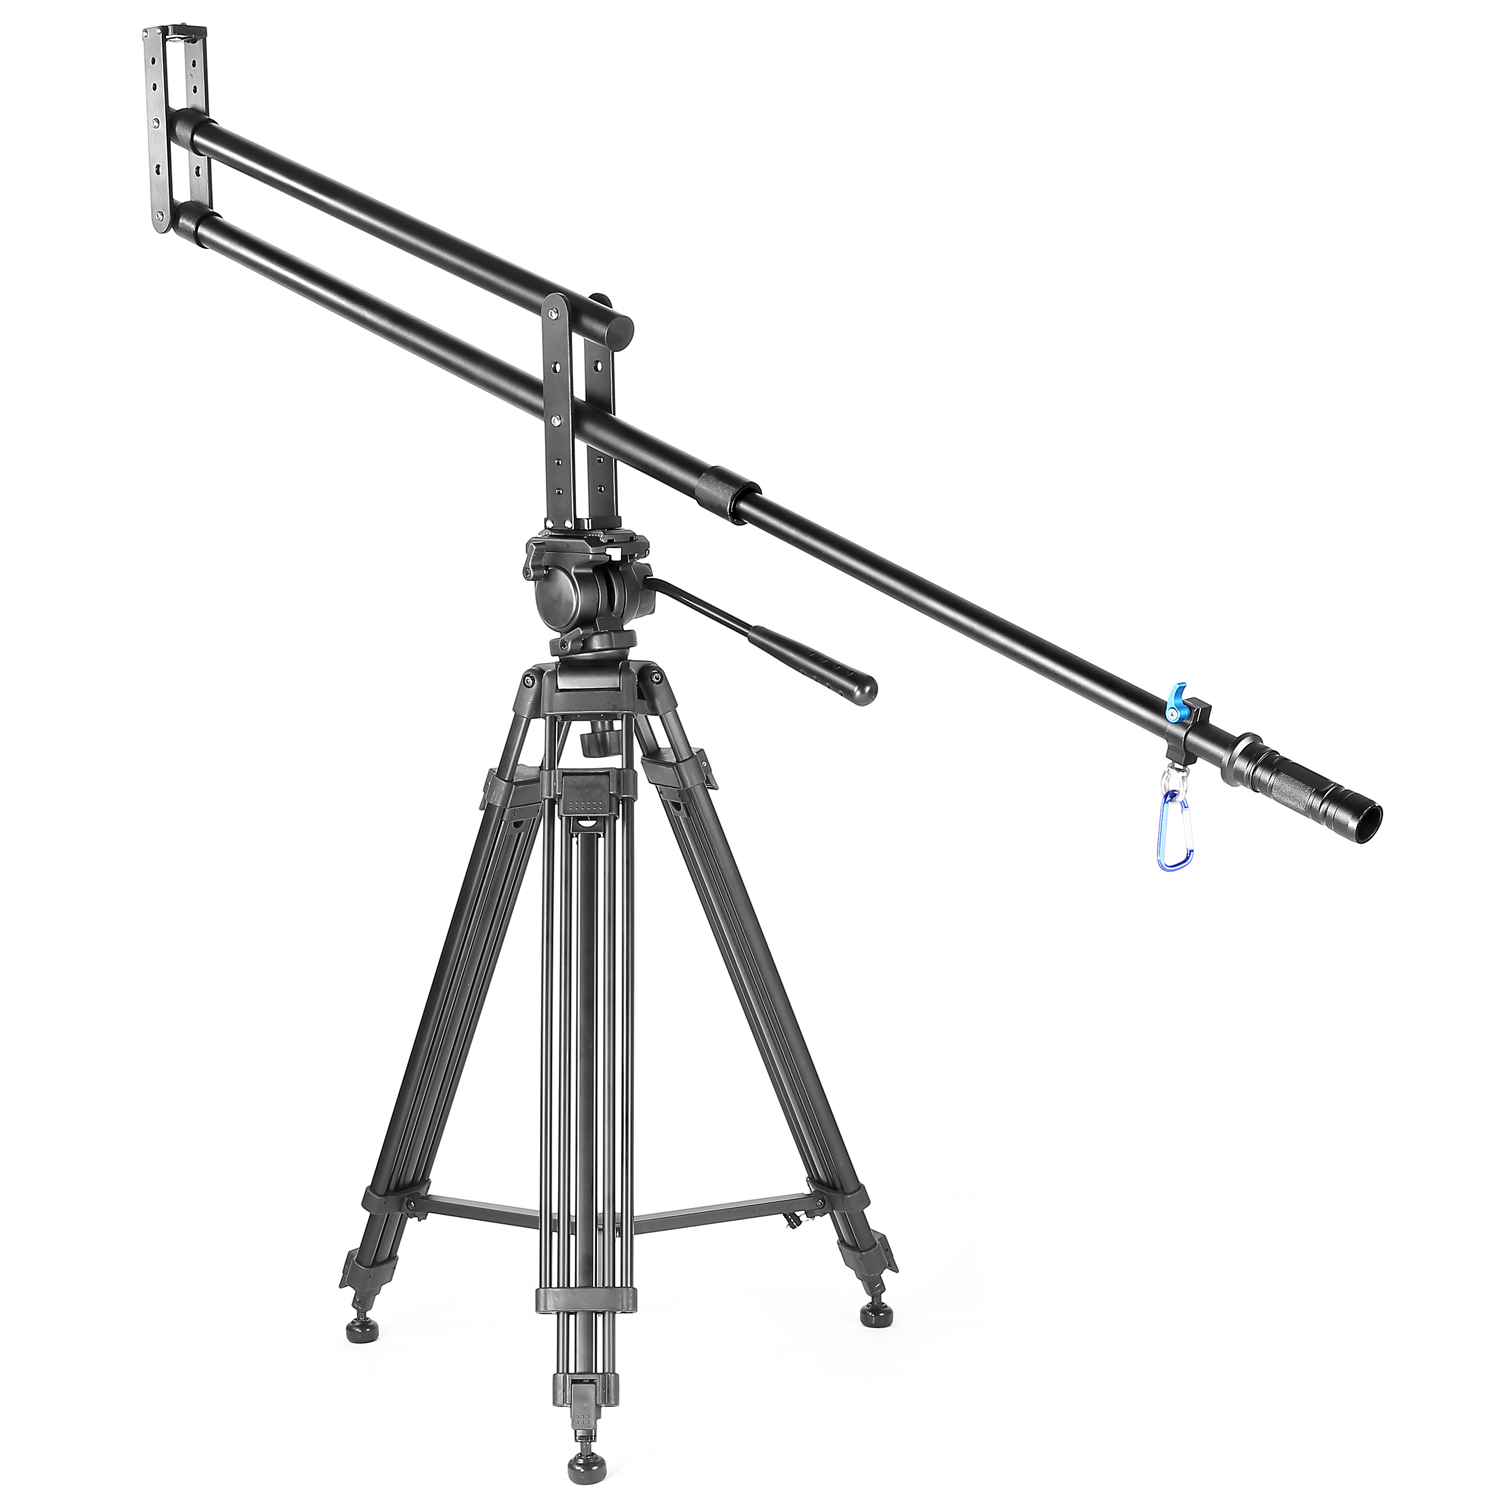 YELANGU Filming Equipment Aluminum Video Camera Crane Jib For DSLR Cameras